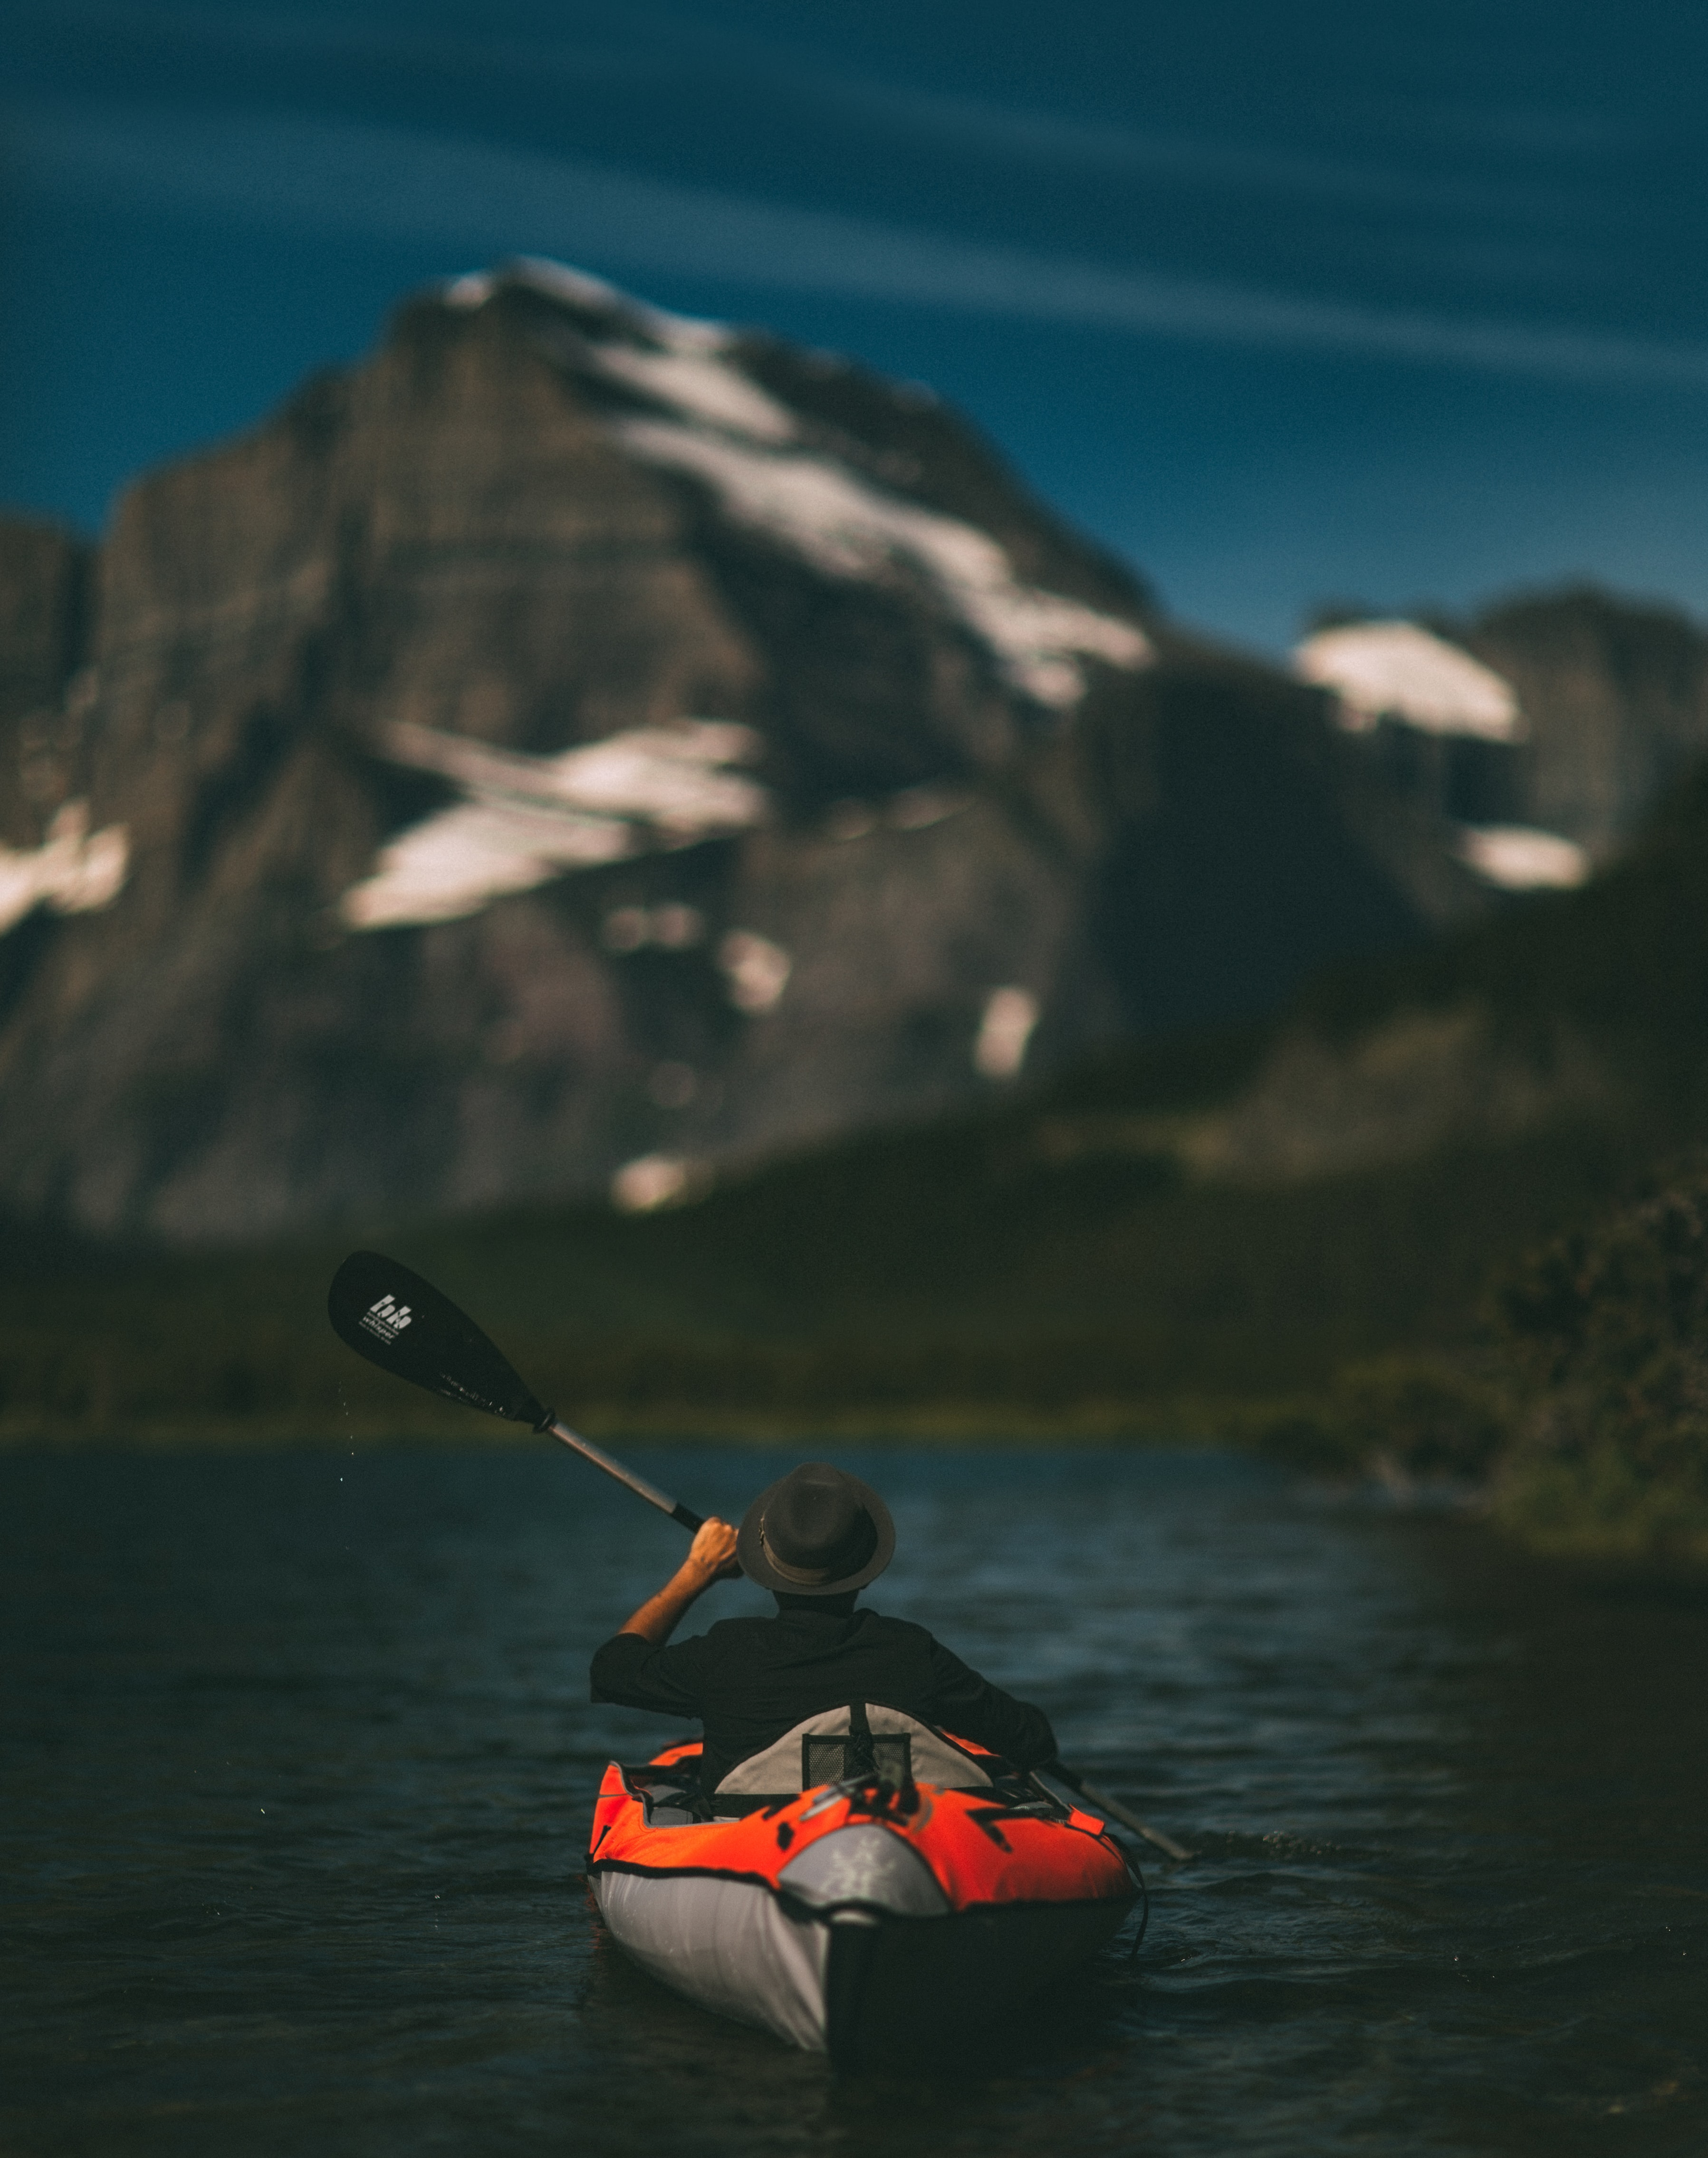 A man wearing a hat paddling in a blow up orange canoe in Swiftcurrent Lake